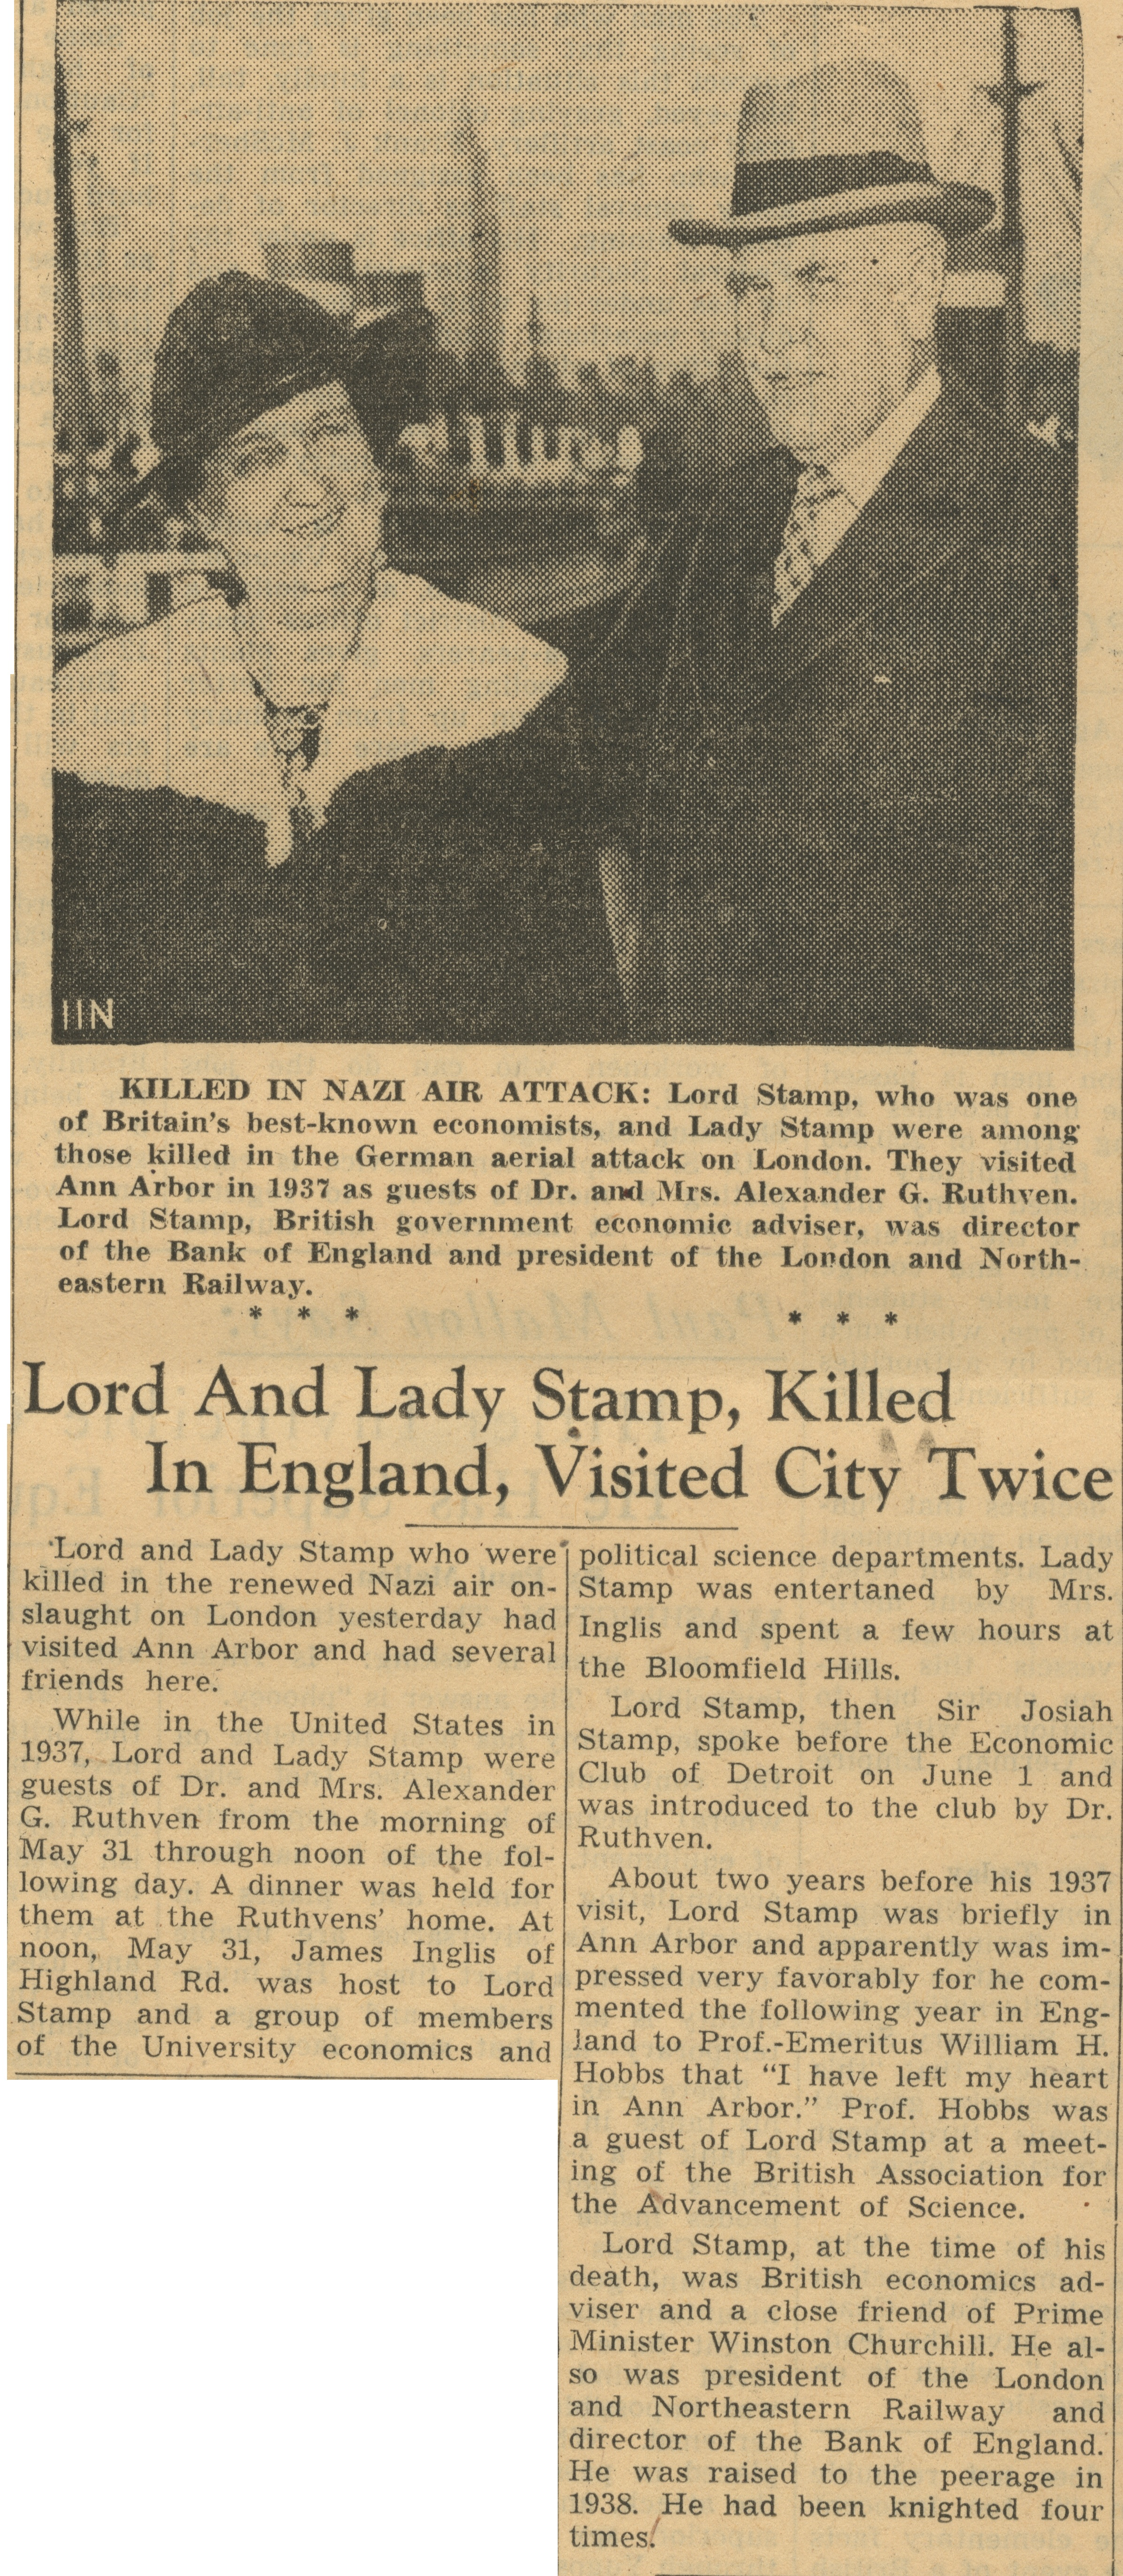 Killed In Nazi Air Attack: Lord and Lady Stamp, Killed In England, Visited City Twice image